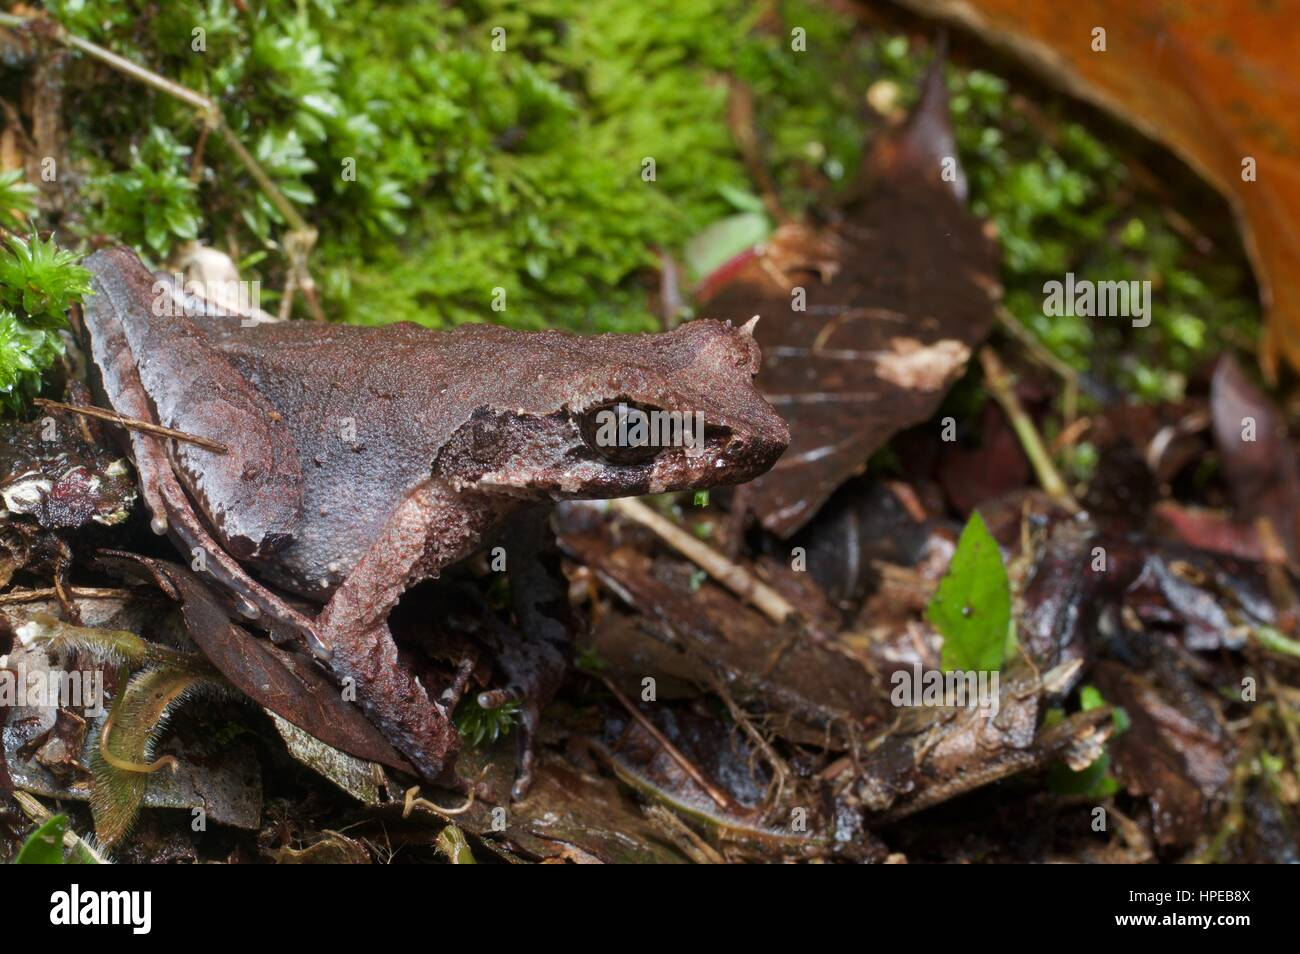 A Slender-legged Horned Frog (Xenophrys longipes) in the leaf litter in Fraser's Hill, Pahang, Malaysia - Stock Image